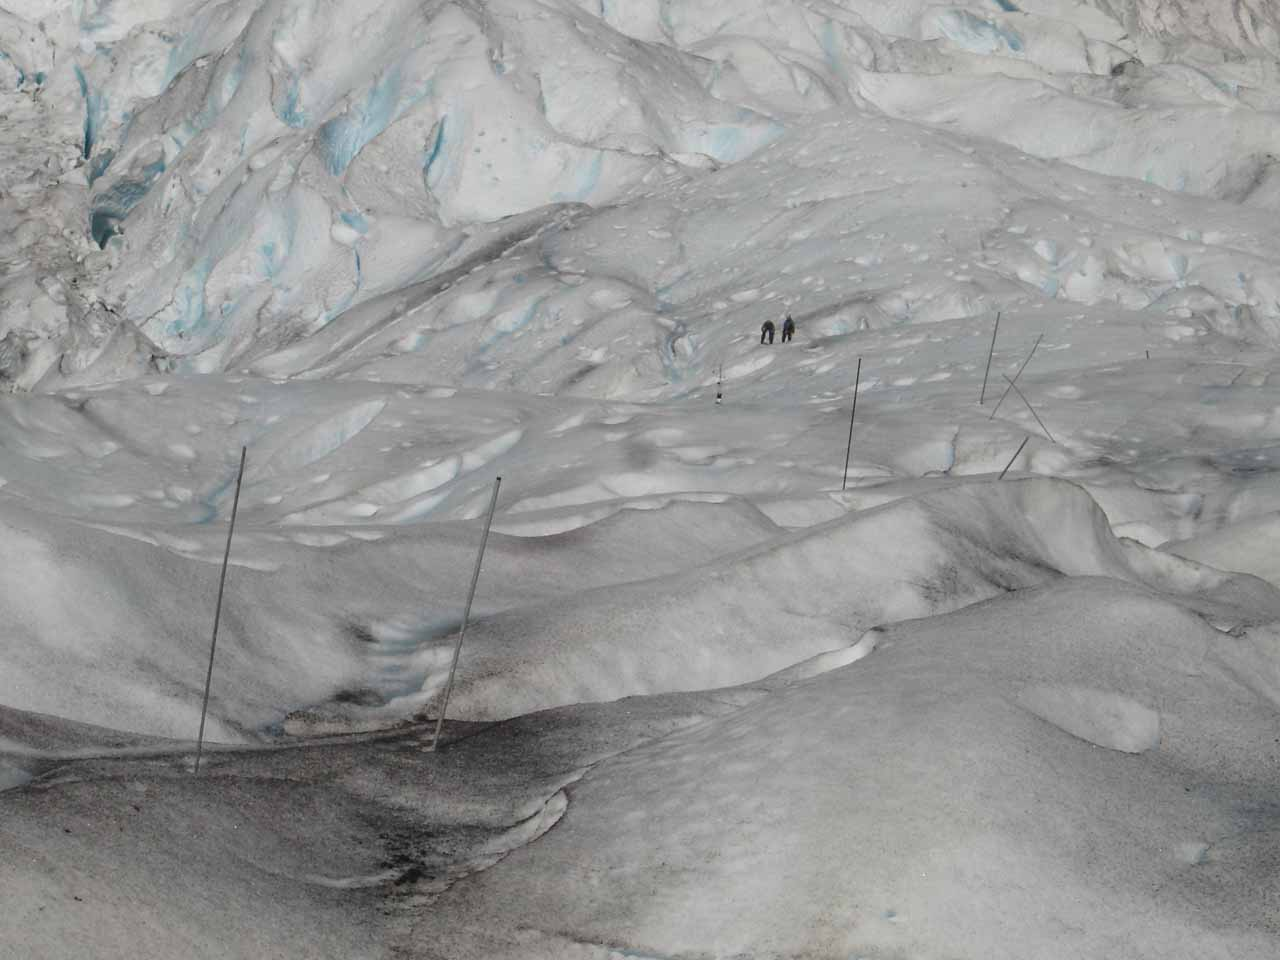 We noticed there were some people doing a glacier walk atop Briksdalsbreen